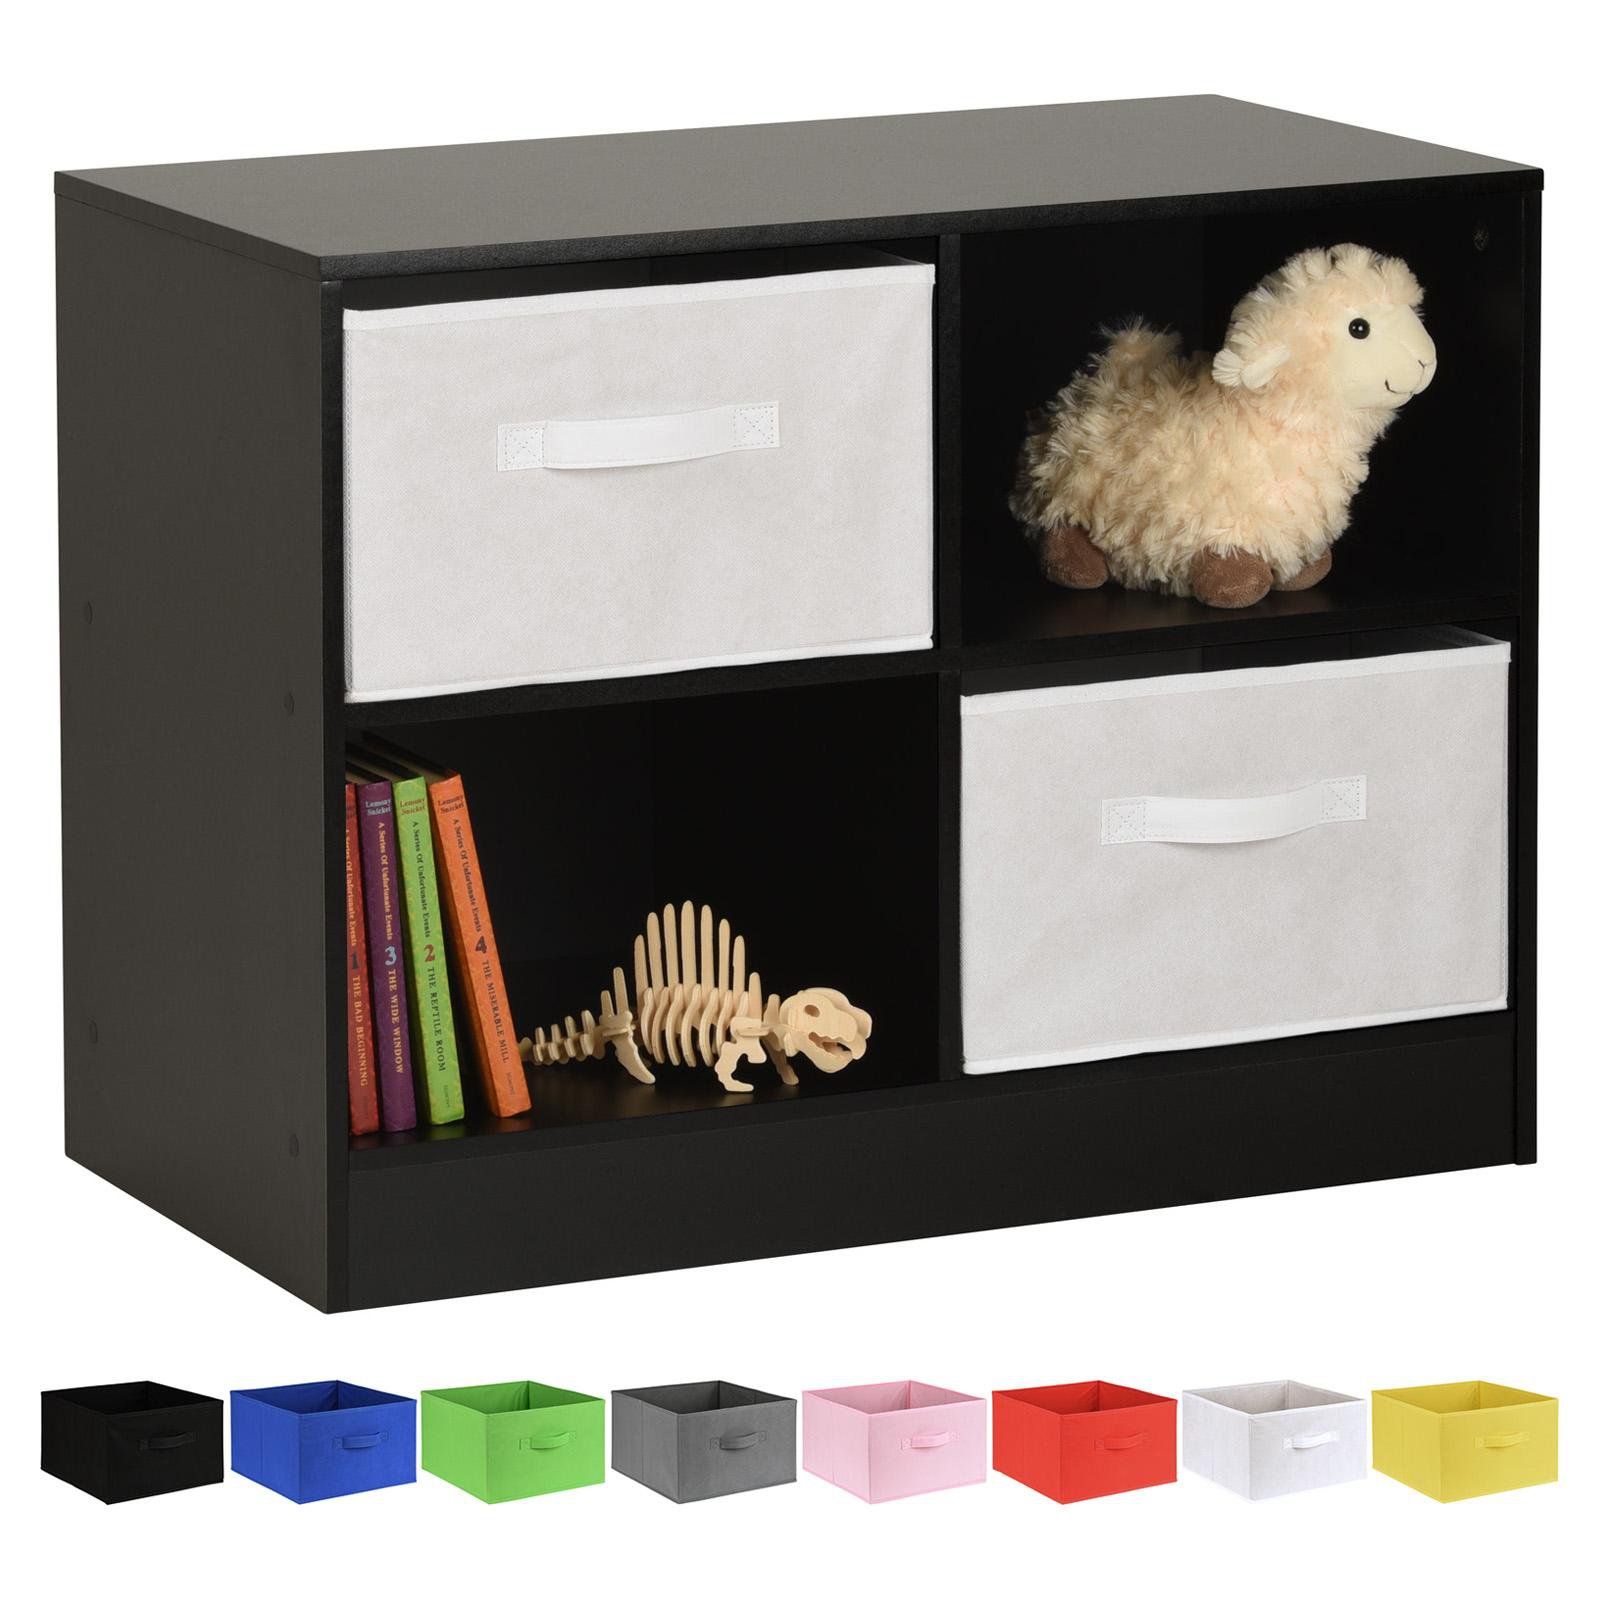 image-Hartleys Black 4 Cube Kids Storage Unit & 2 Handled Box Drawers - White